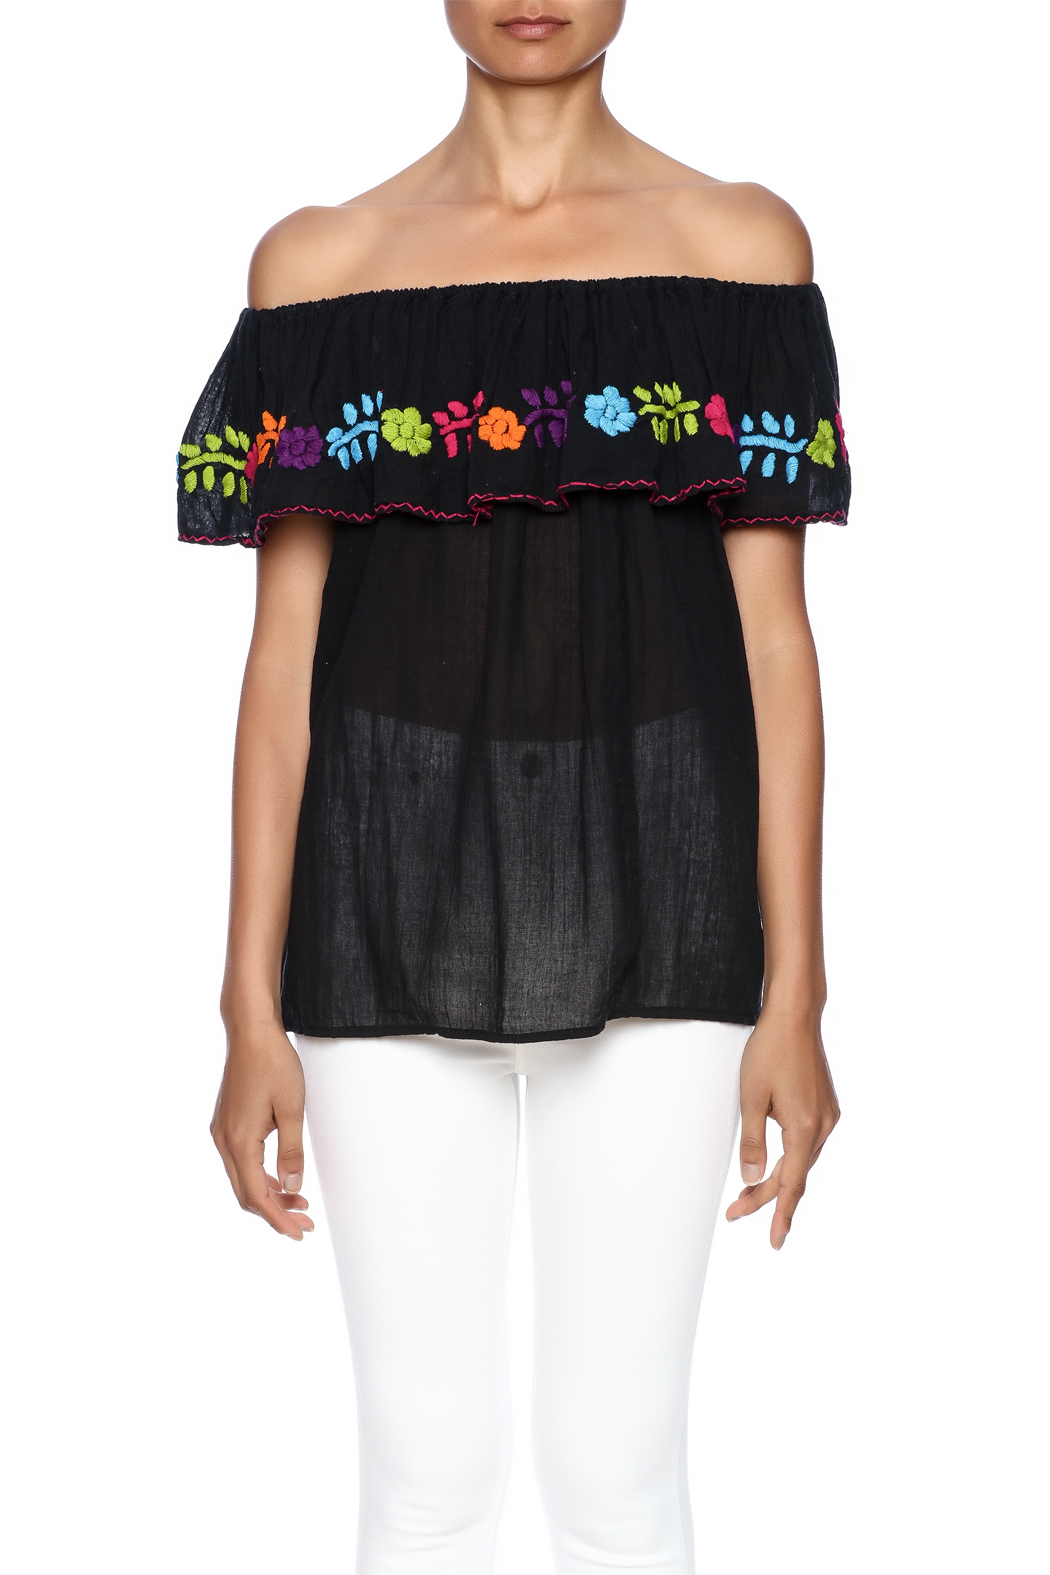 Nativa Mexican Vuelo Blouse - Side Cropped Image